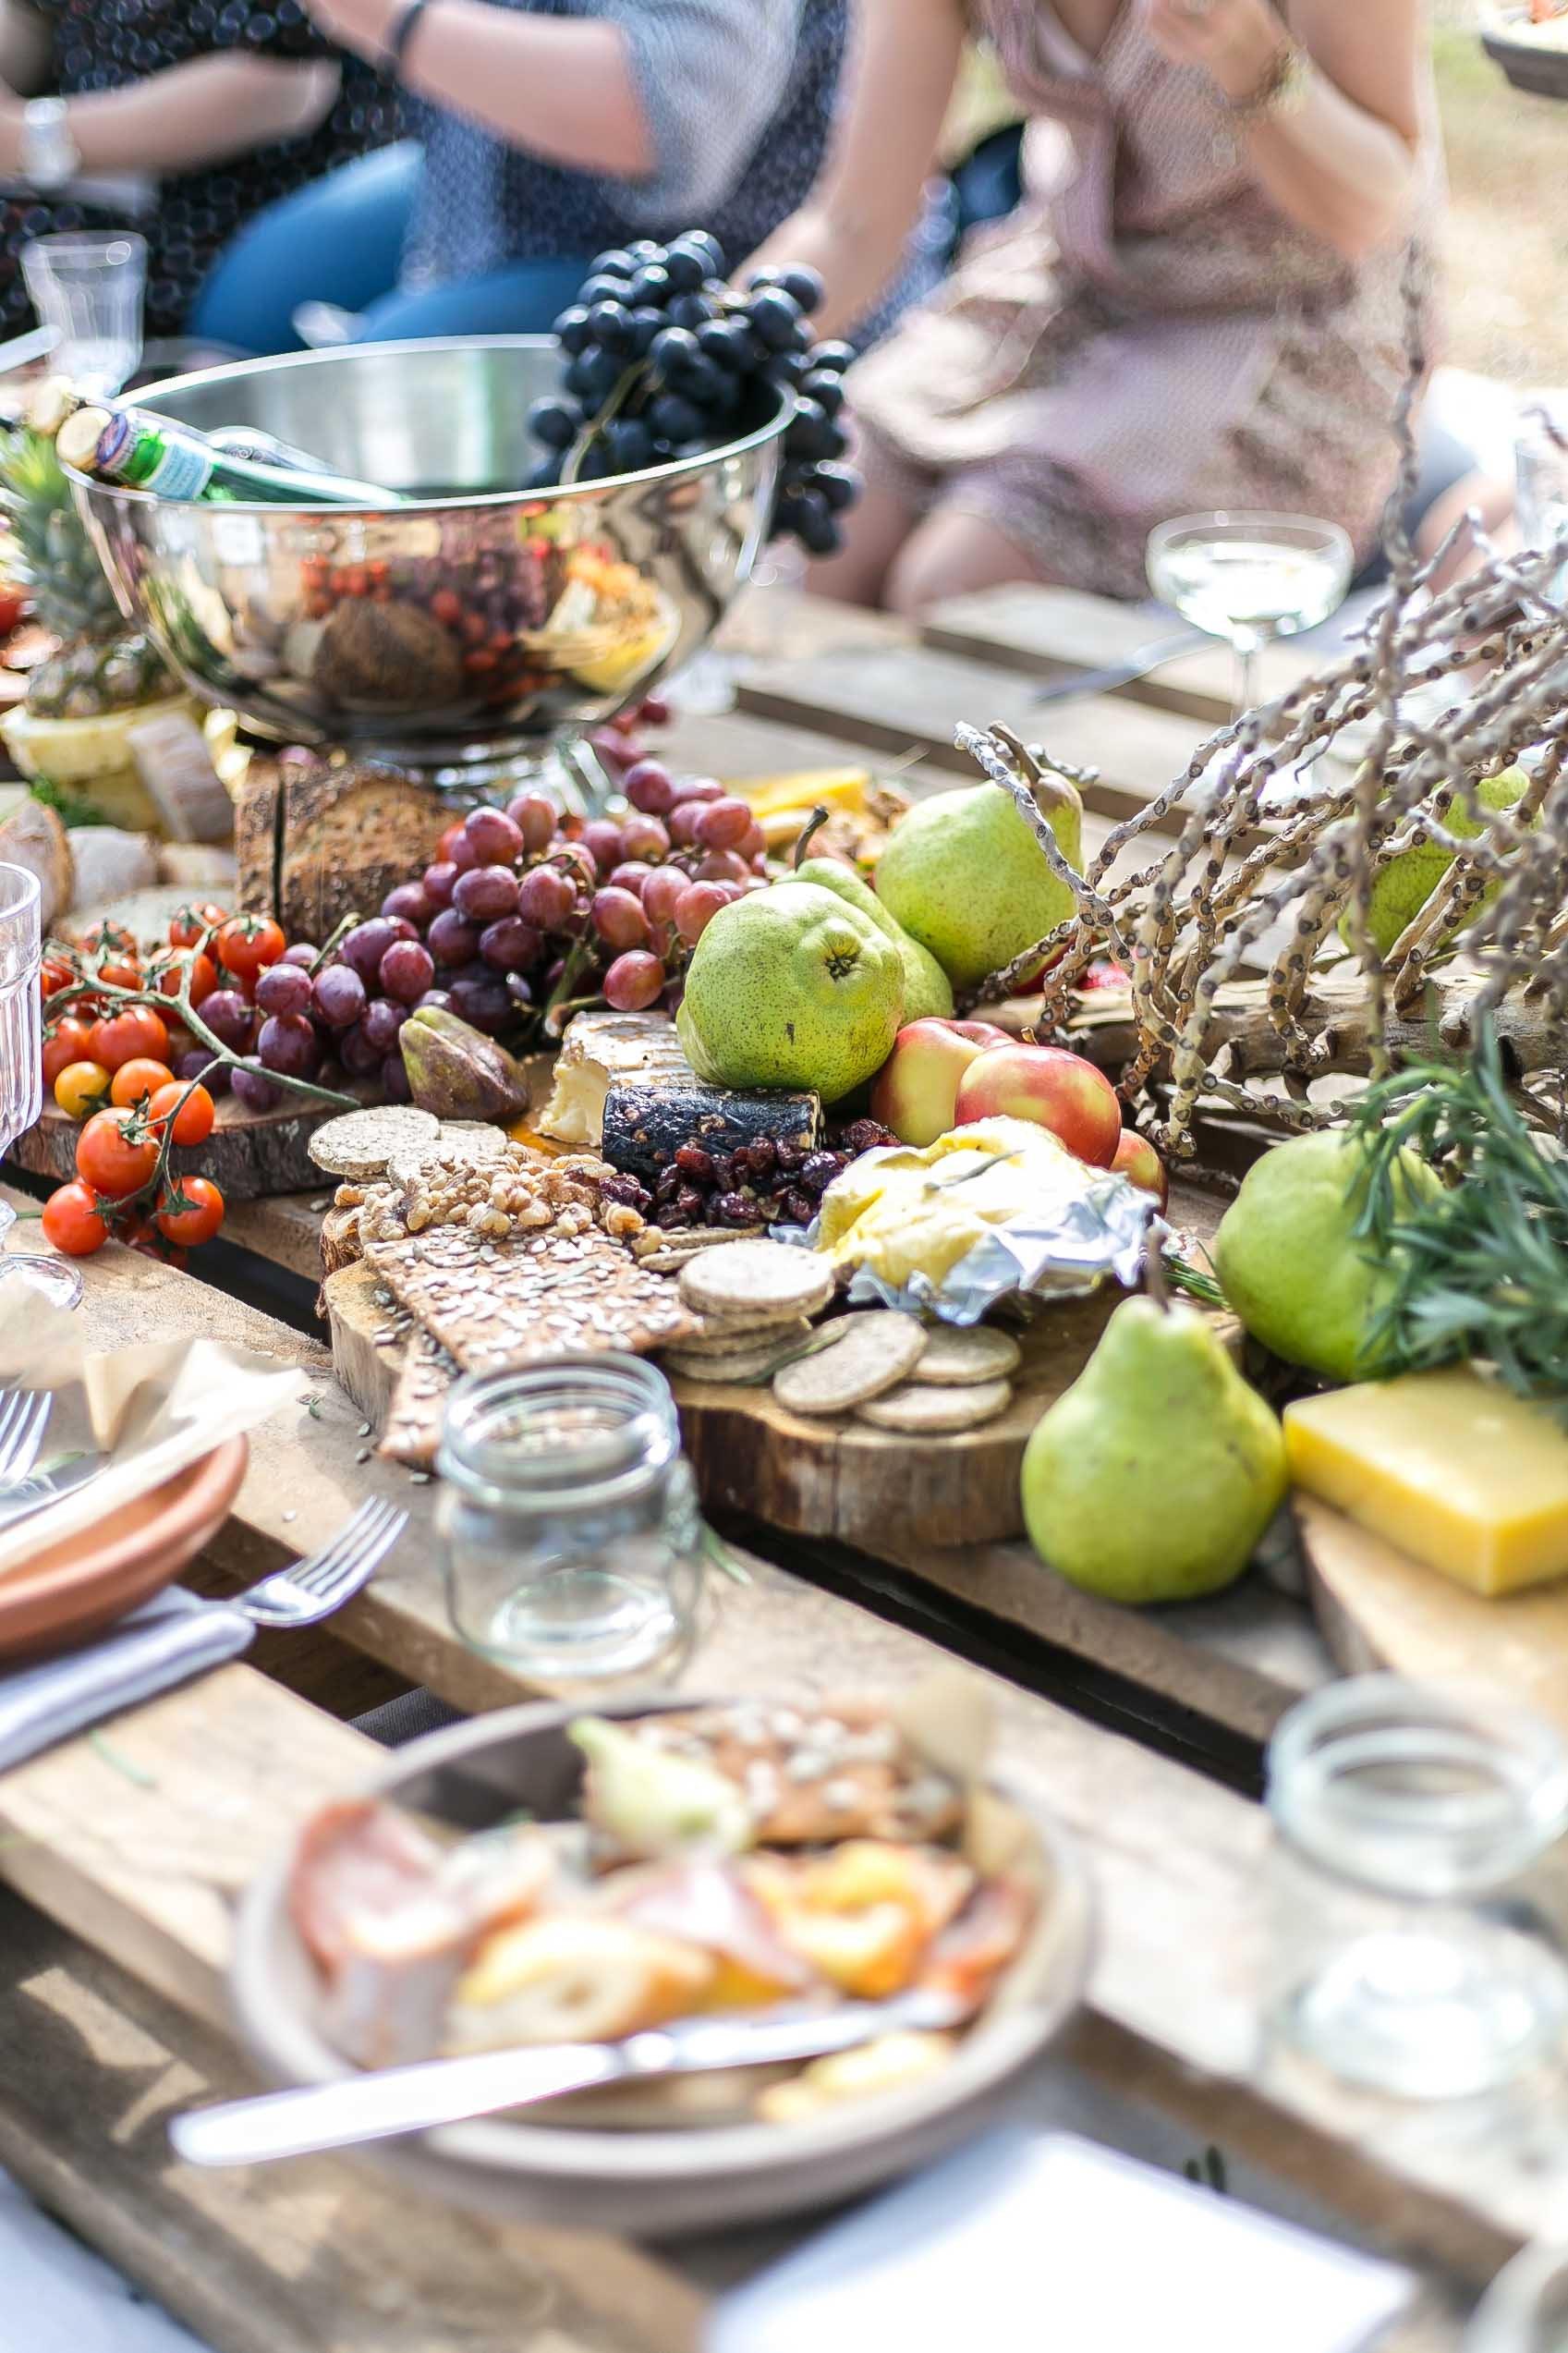 Cottonwood and Co - Wild Adventure Cookbook launch - Lifestyle Photographer